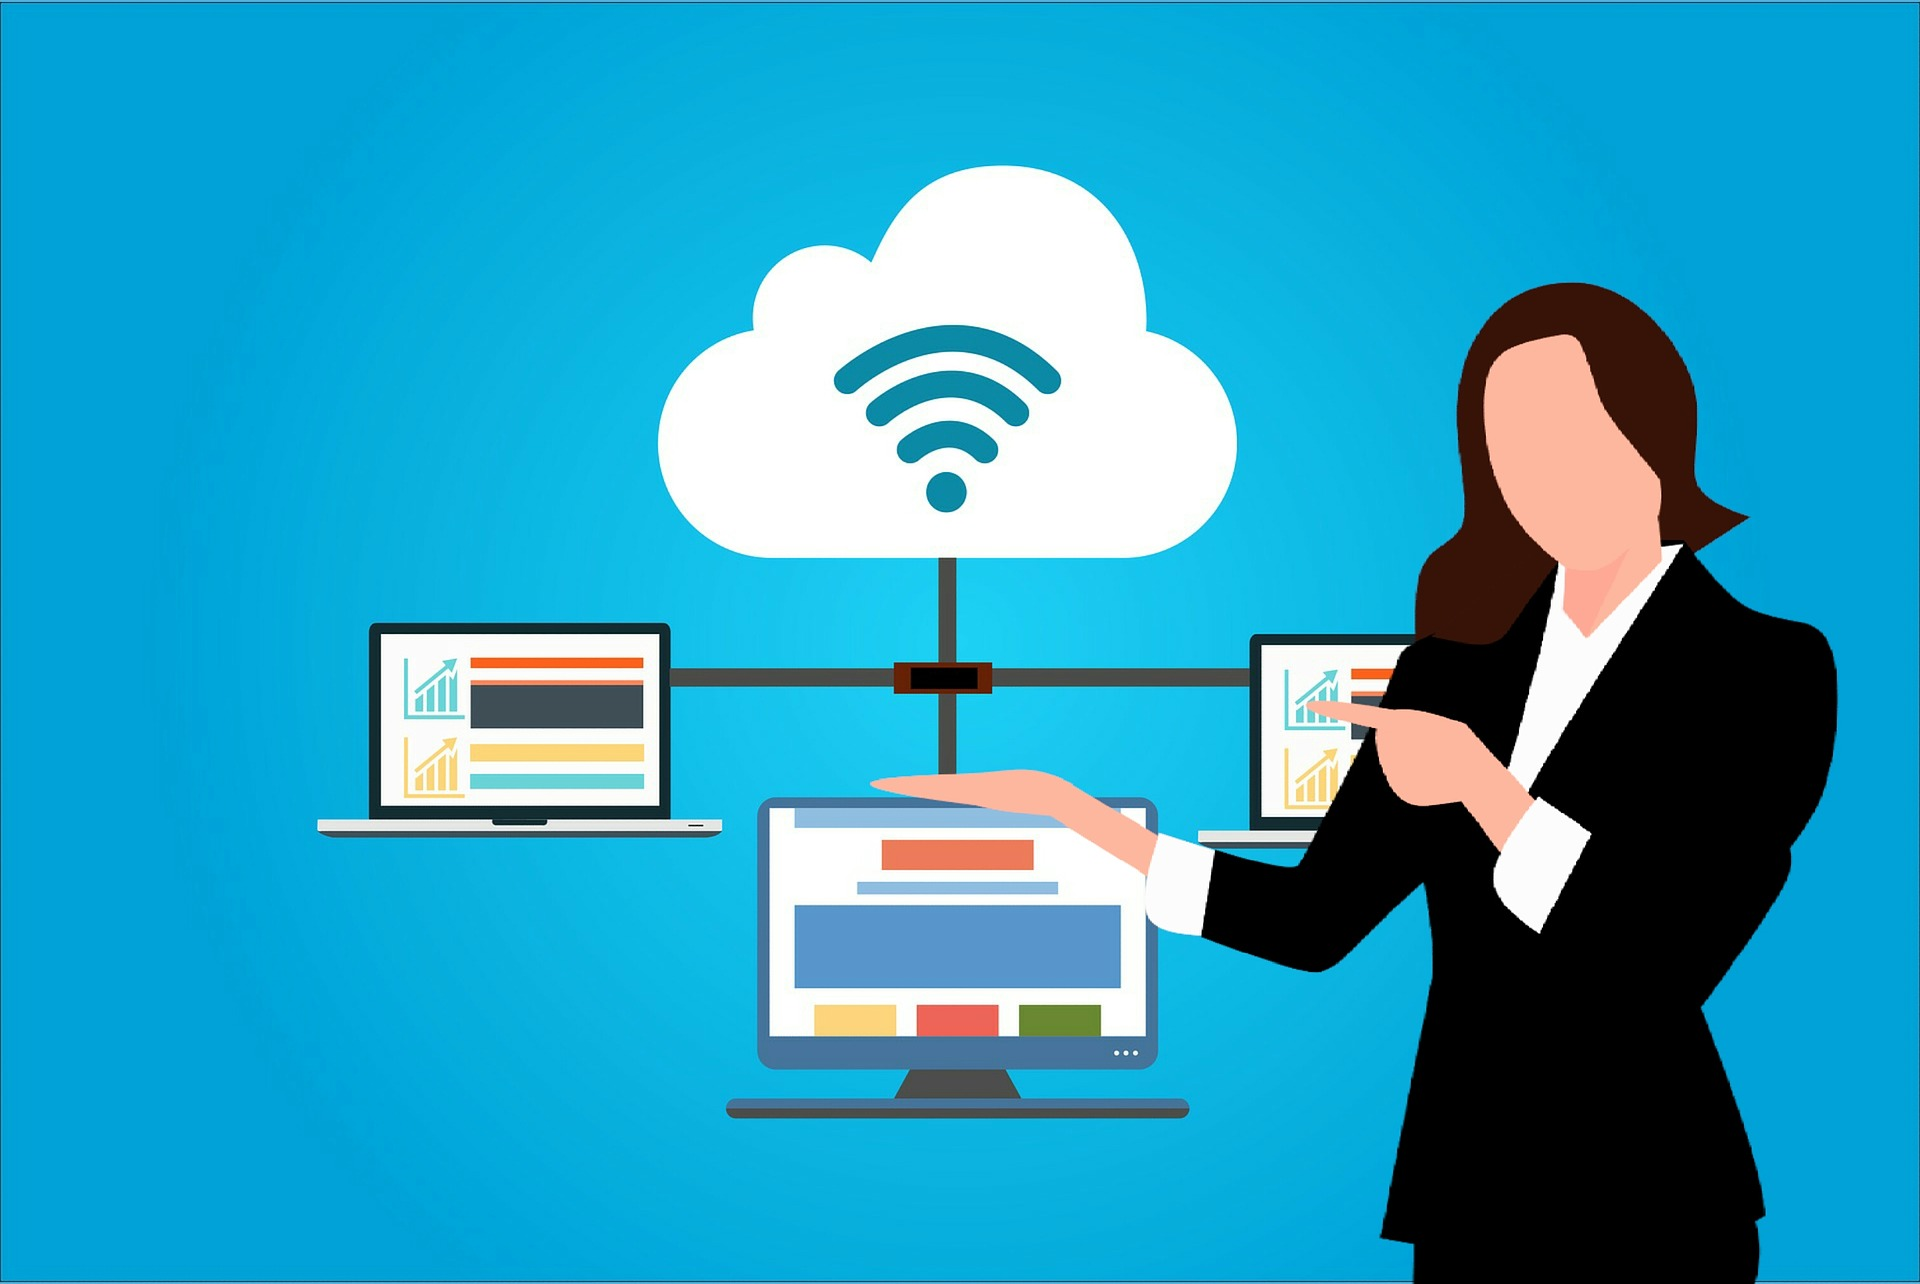 demo-of-pros-and-cons-of-cloud-computing